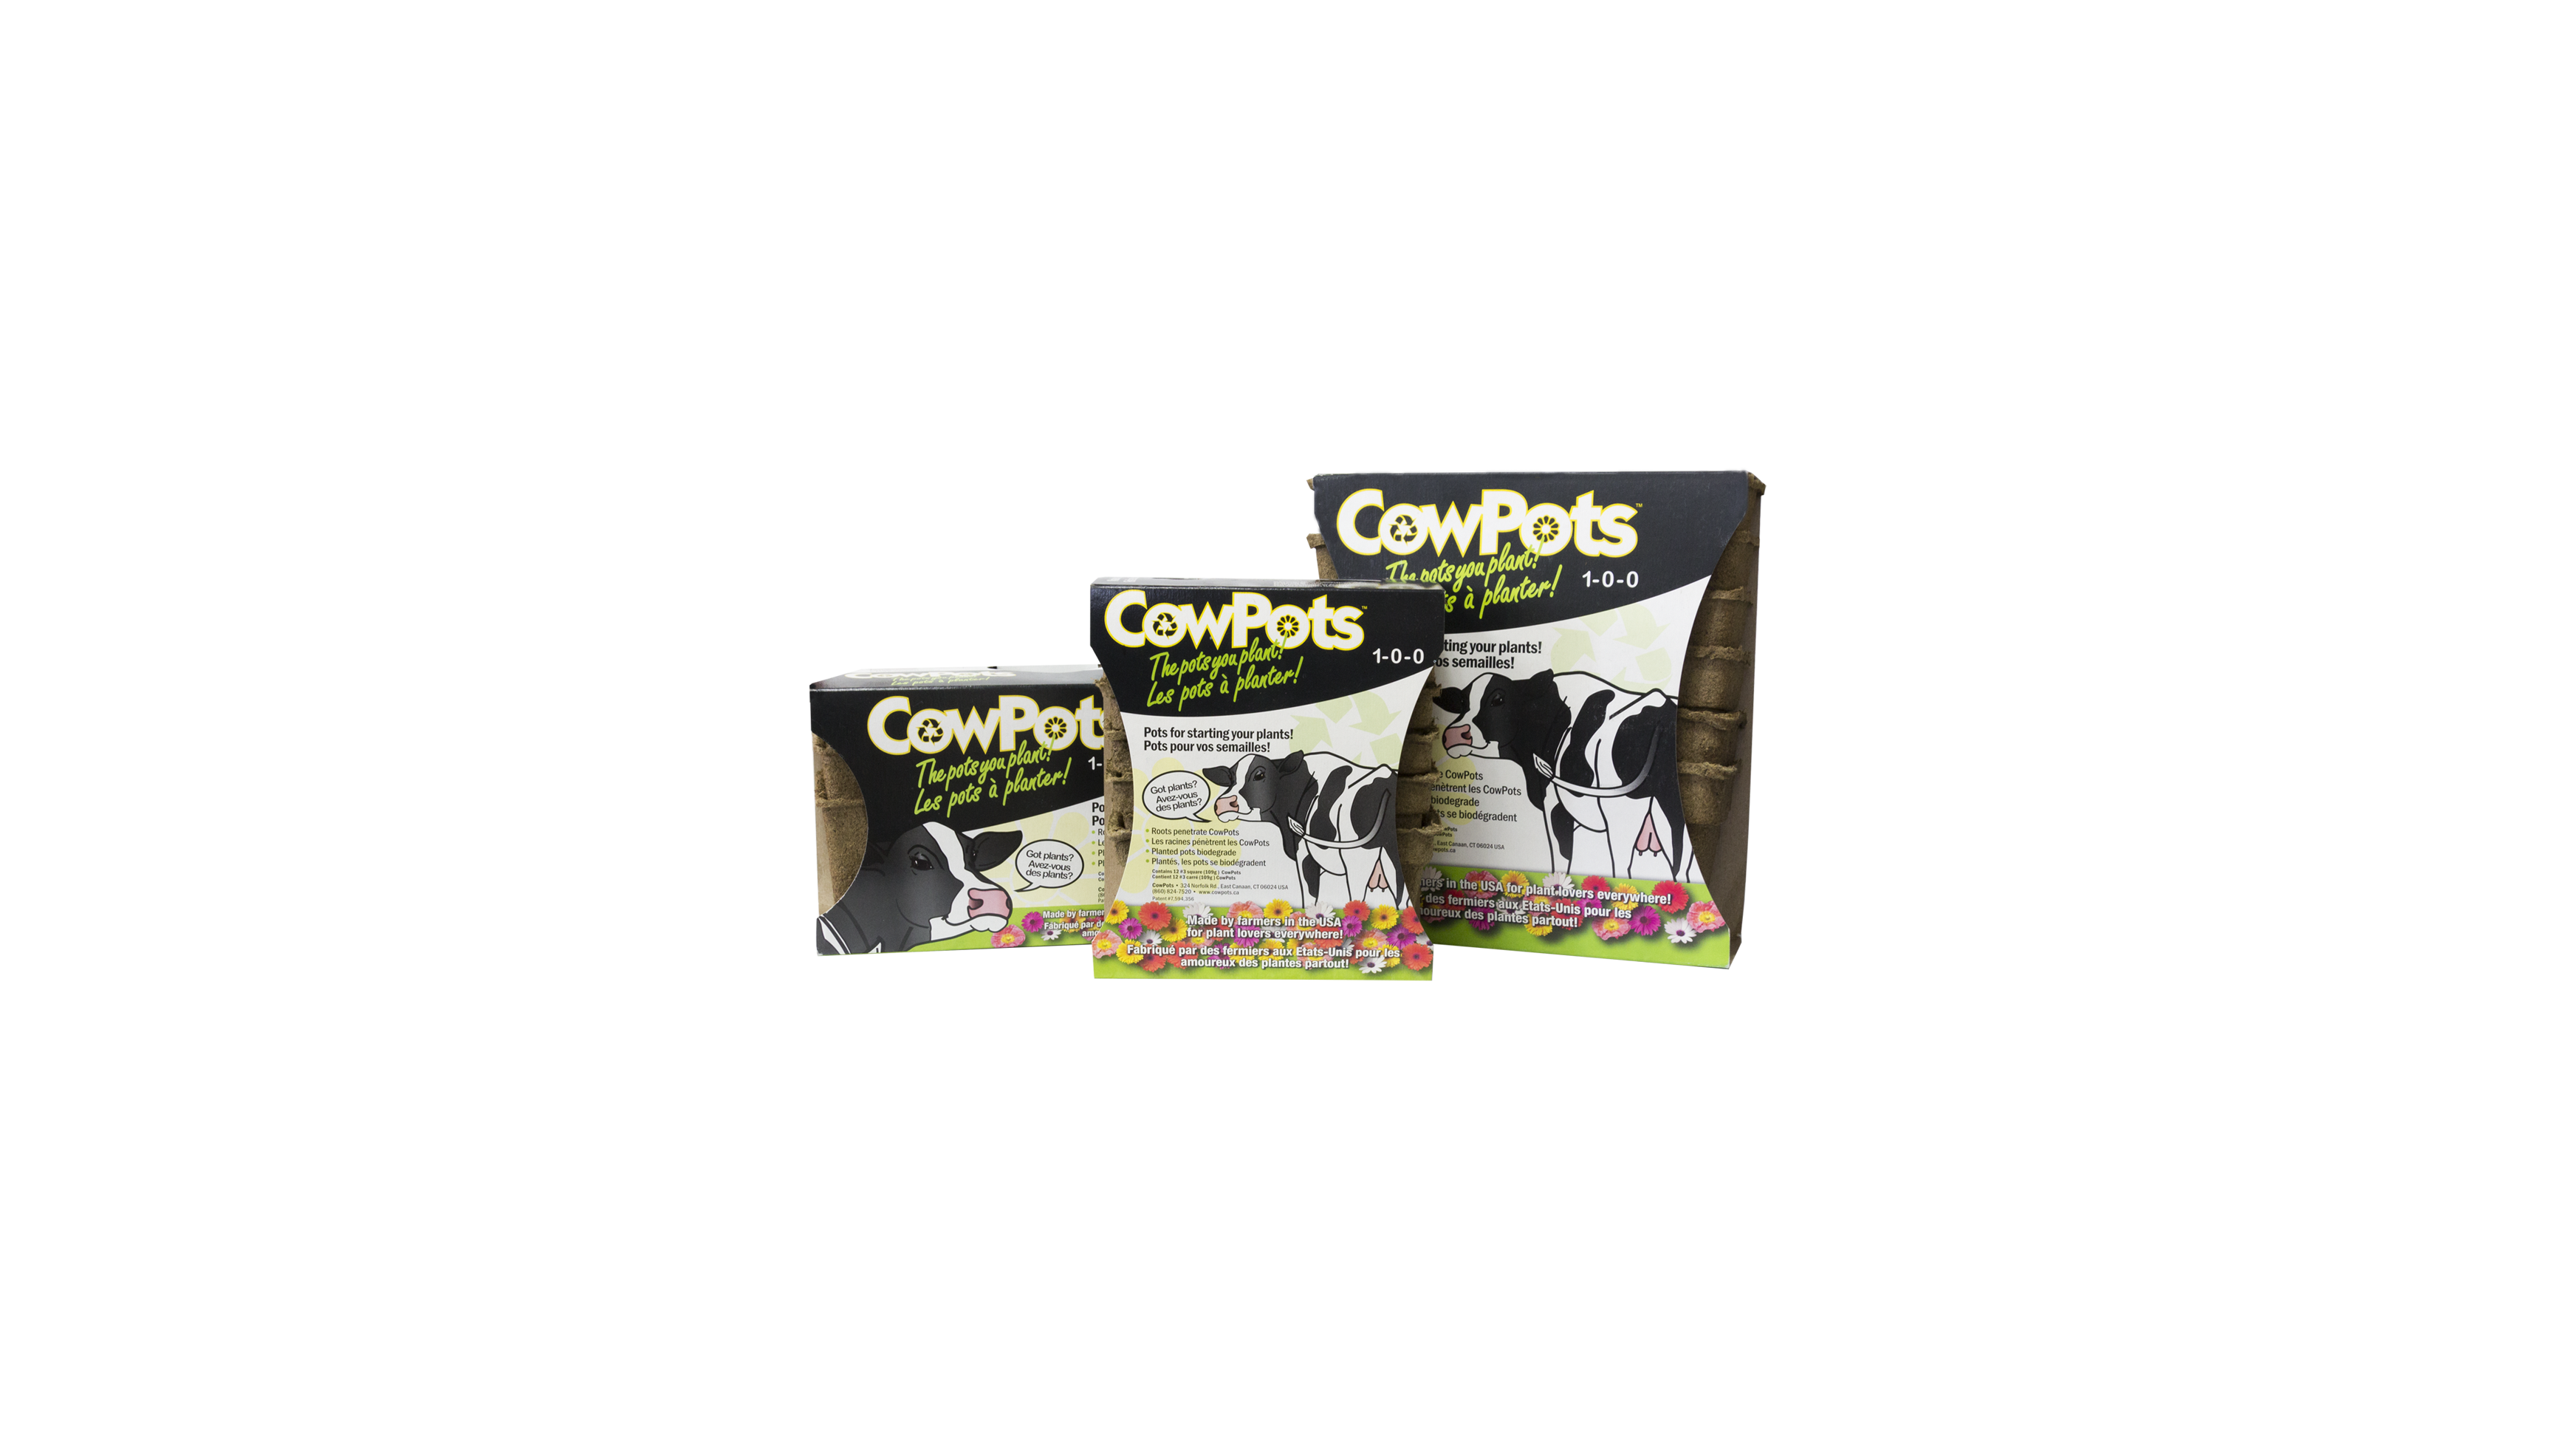 Cowpots the 3 sizes-2